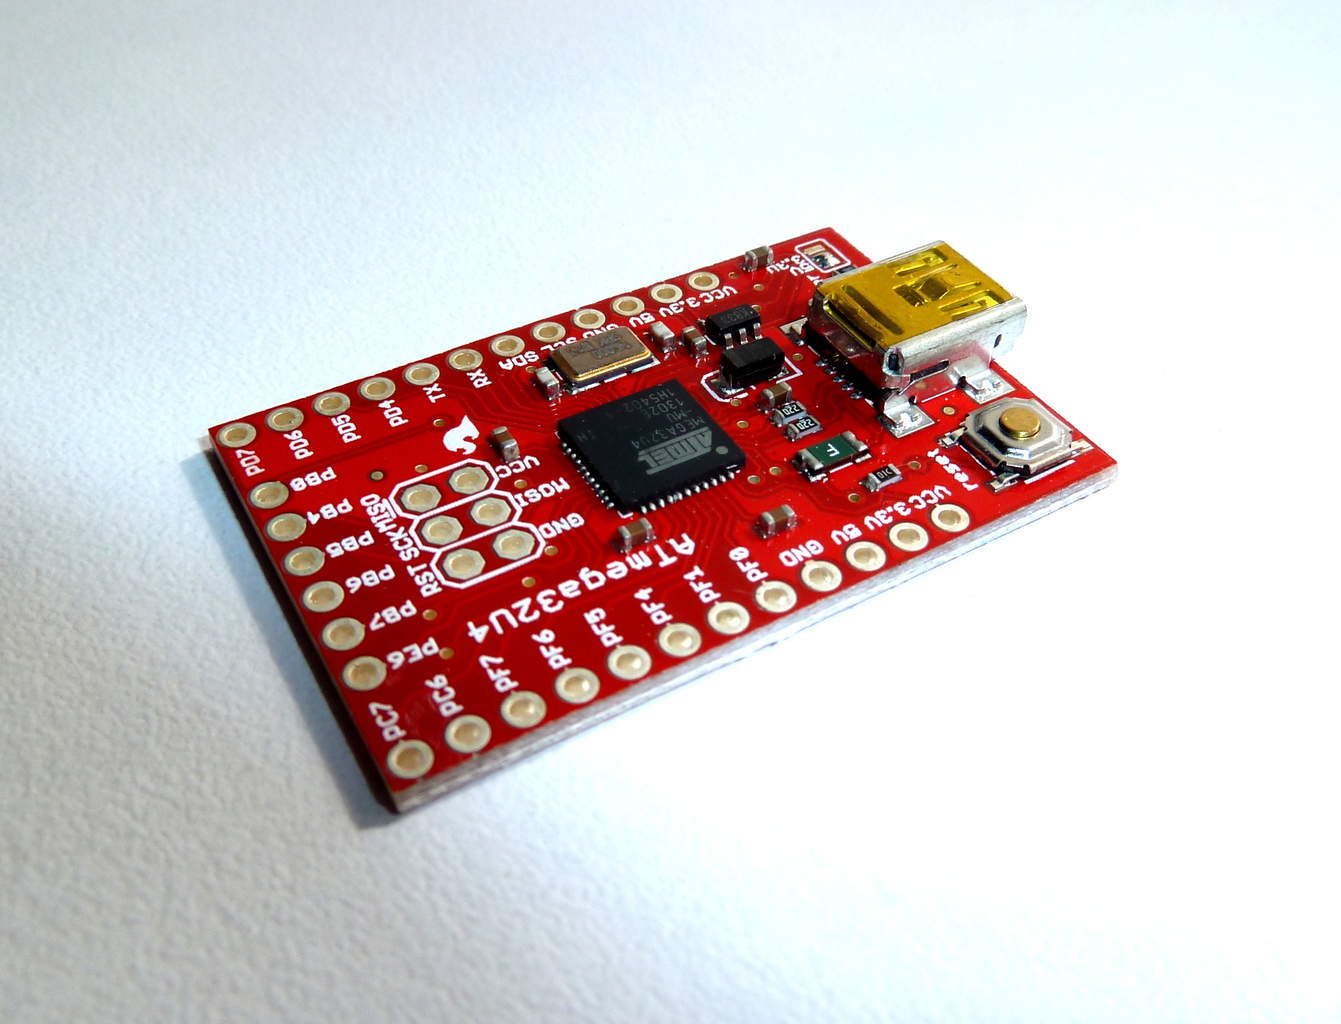 Usb circuit development made easy build electronic circuits usb circuit breakout board from sparkfun solutioingenieria Images